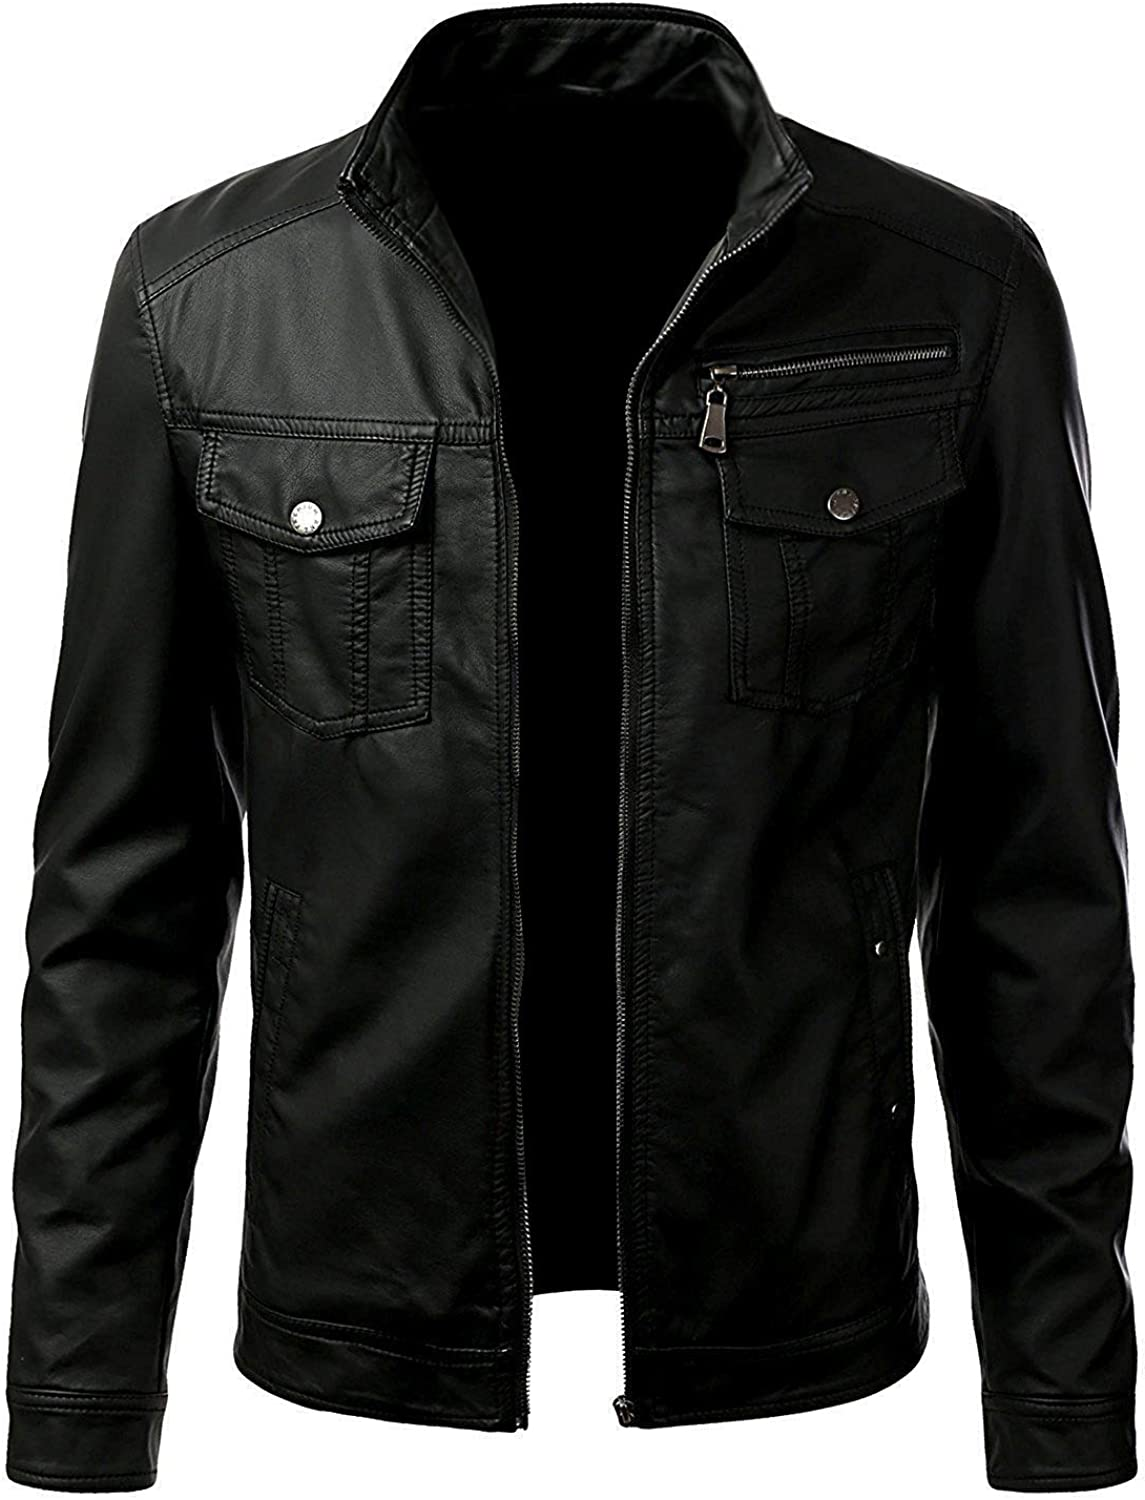 Trendz/&ideas Sleek Black Leather Jacket for Men